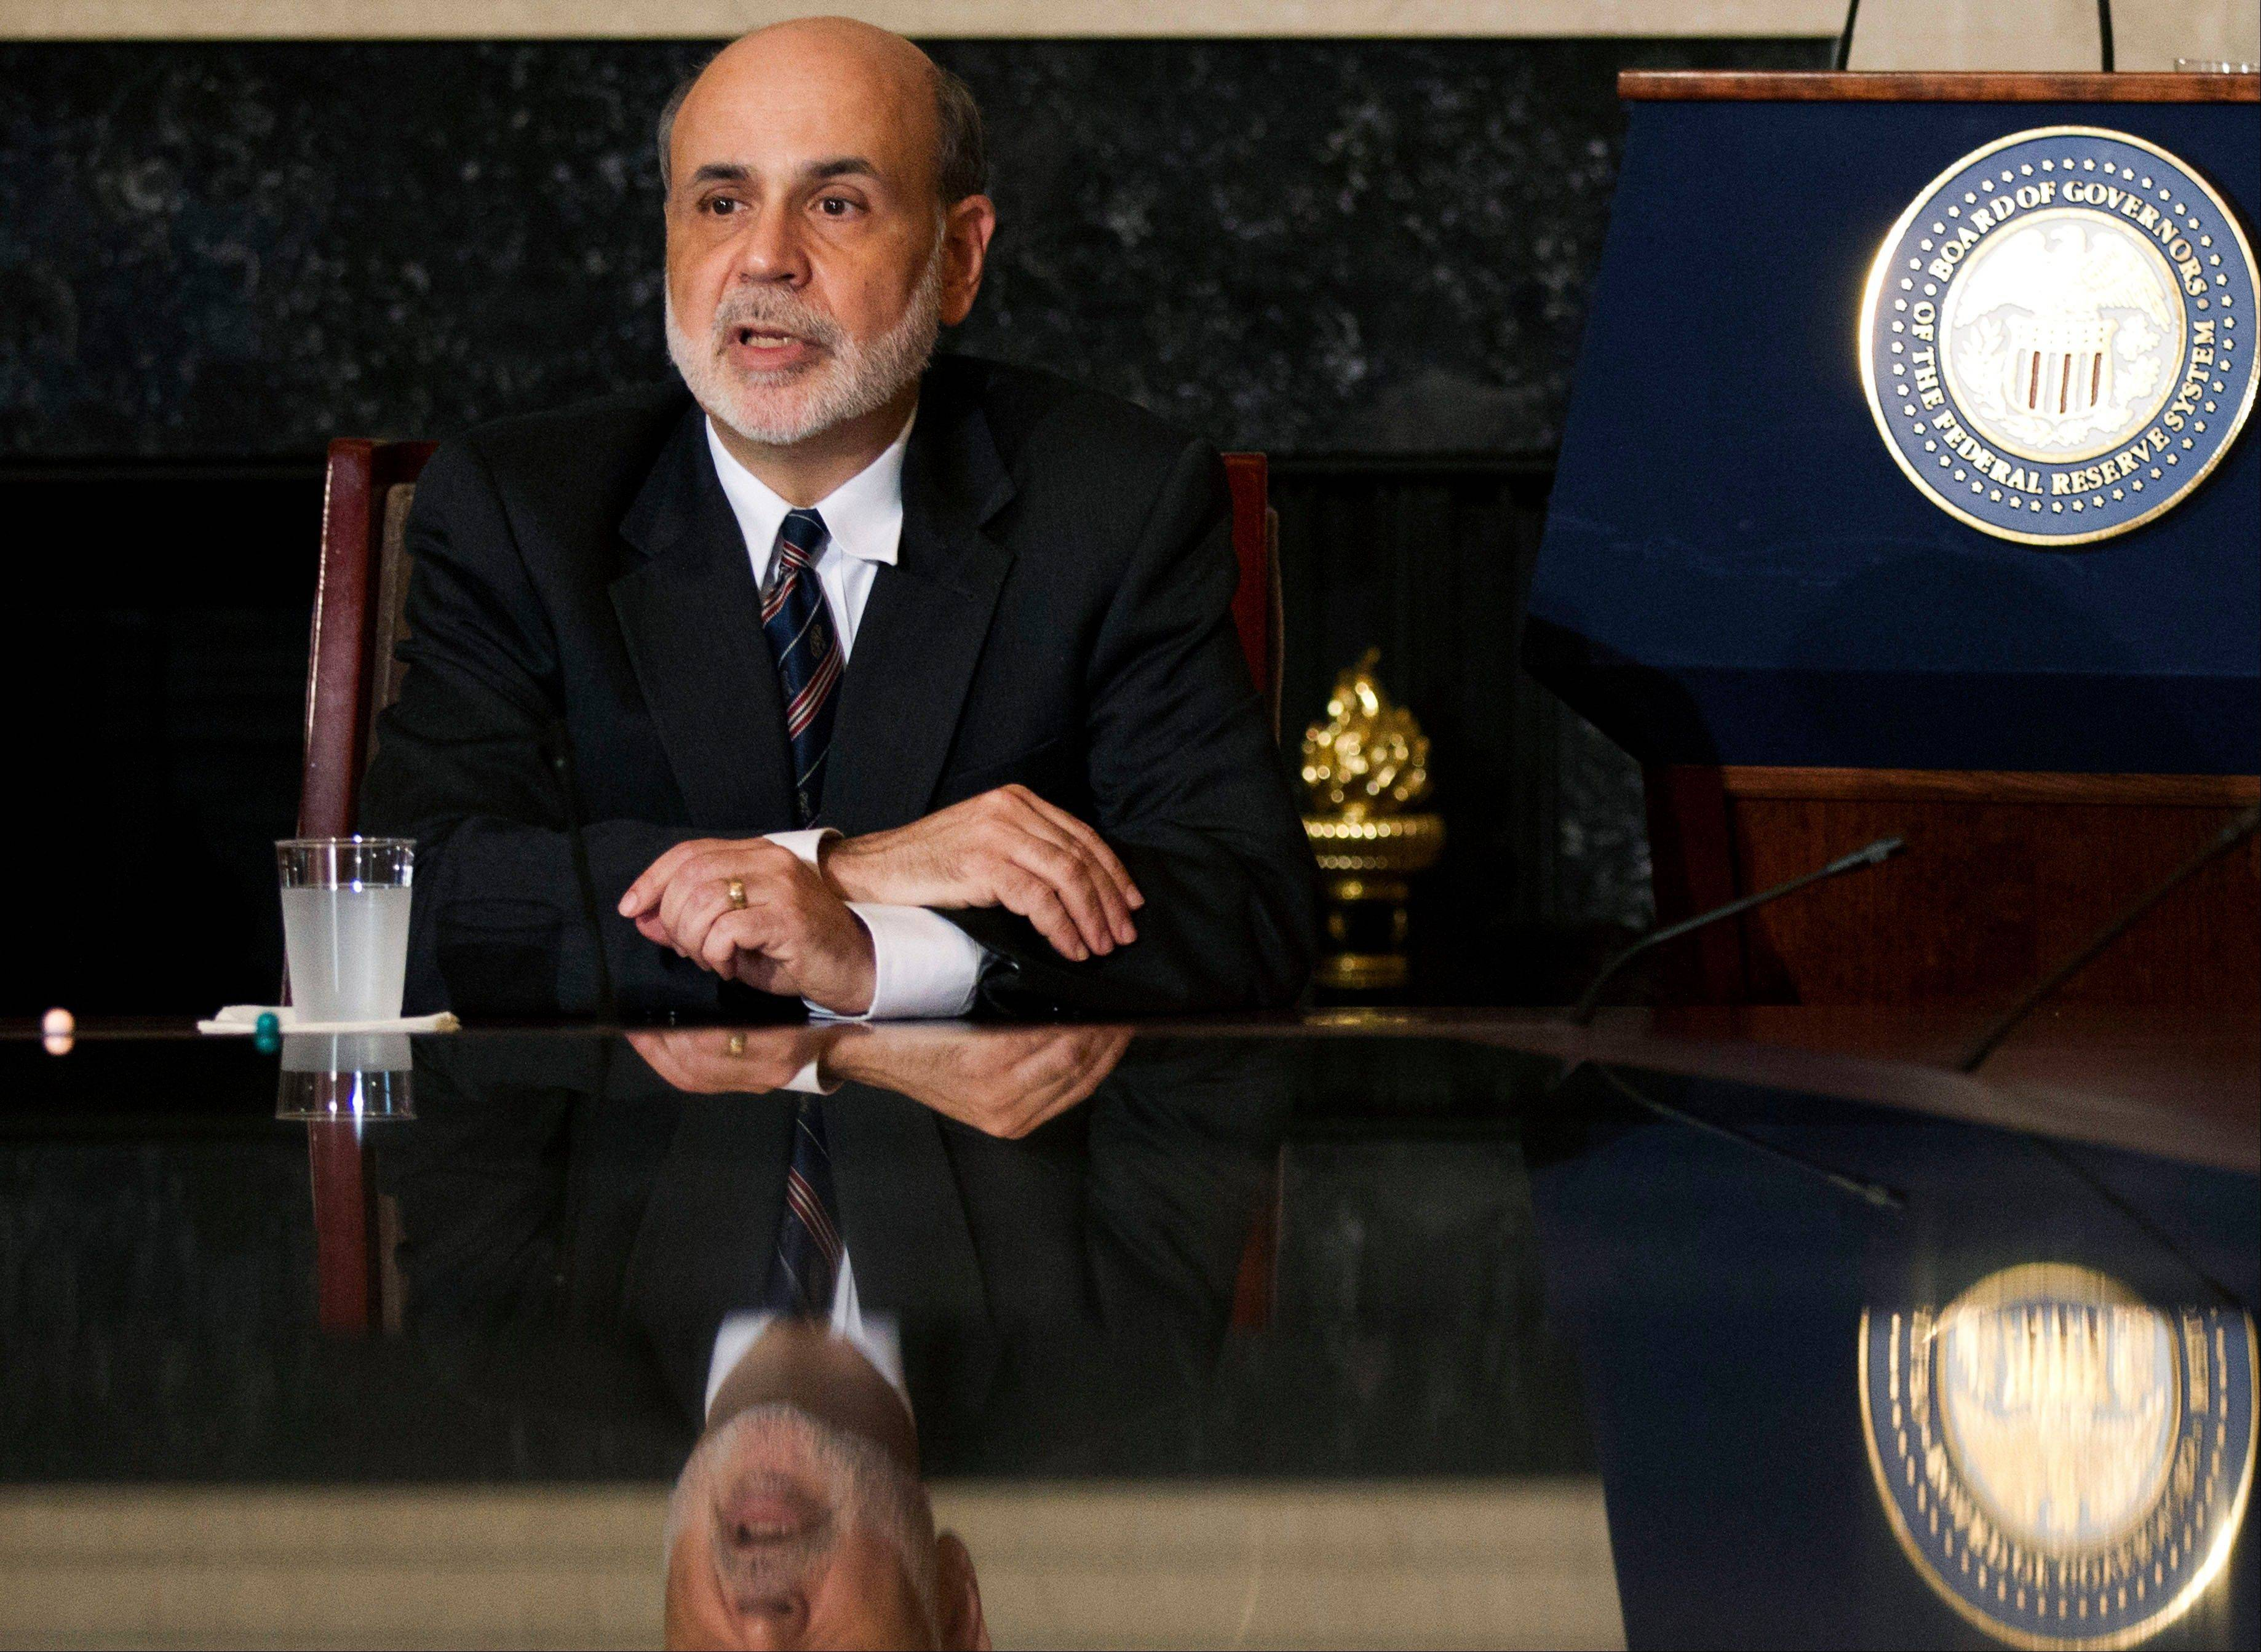 Investors are at least hoping Federal Reserve Chairman Ben Bernanke, above, at least hints Friday the Federal Reserve is ready to launch another round of bond purchases to try to lower long-term U.S. interest rates and spur more borrowing and spending.